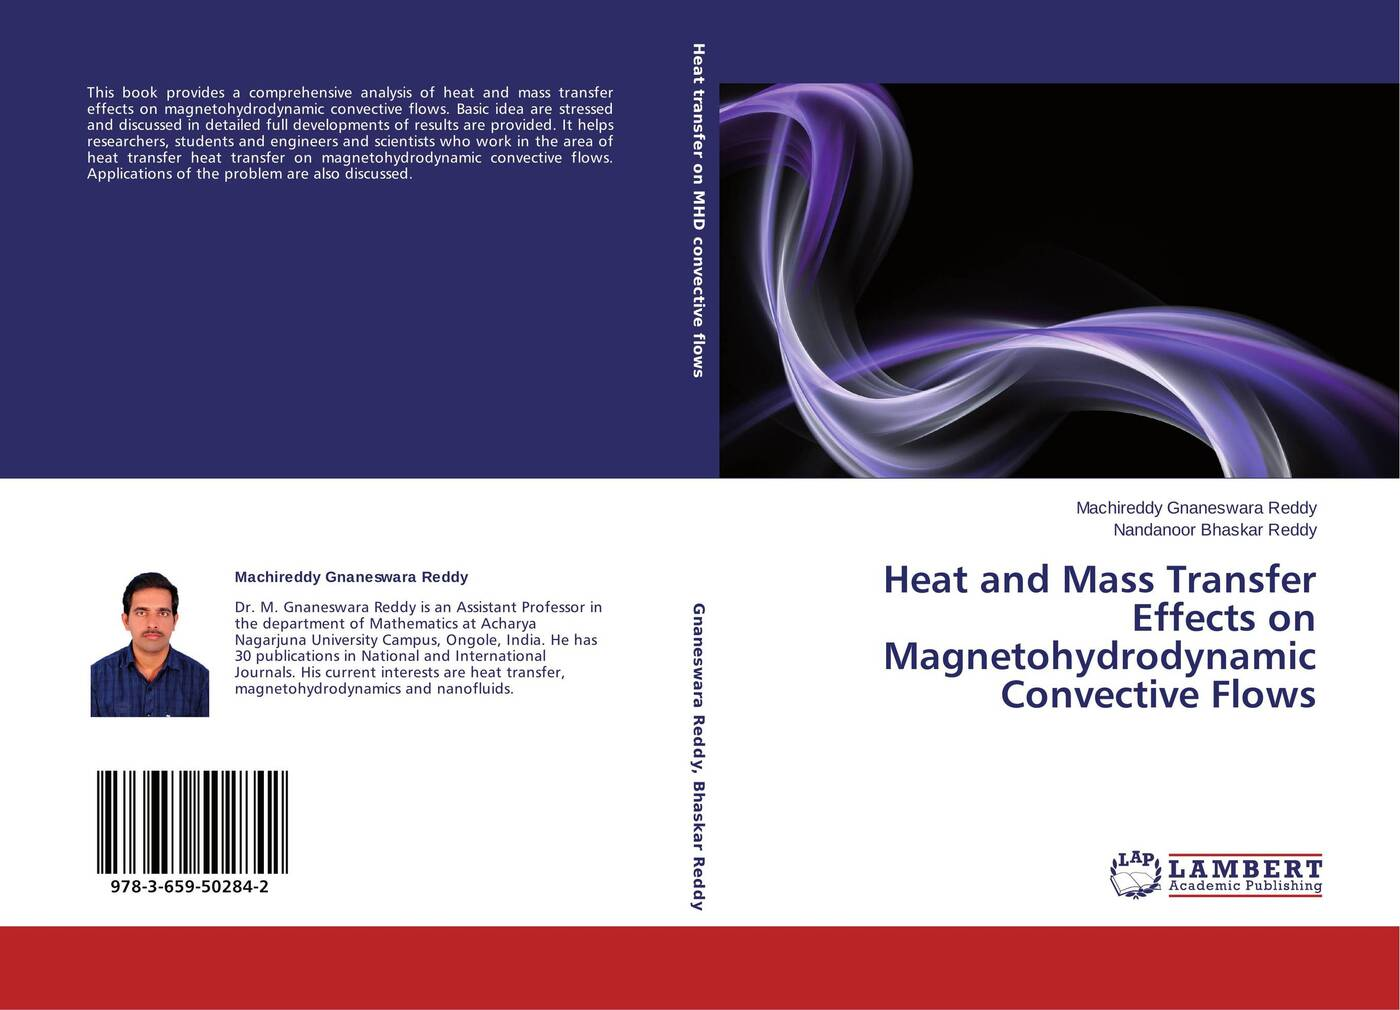 Фото - Machireddy Gnaneswara Reddy and Nandanoor Bhaskar Reddy Heat and Mass Transfer Effects on Magnetohydrodynamic Convective Flows 2pcs heat press machine silicone pad mat 50x70x1cm high temperature resistant for heat transfer sublimation